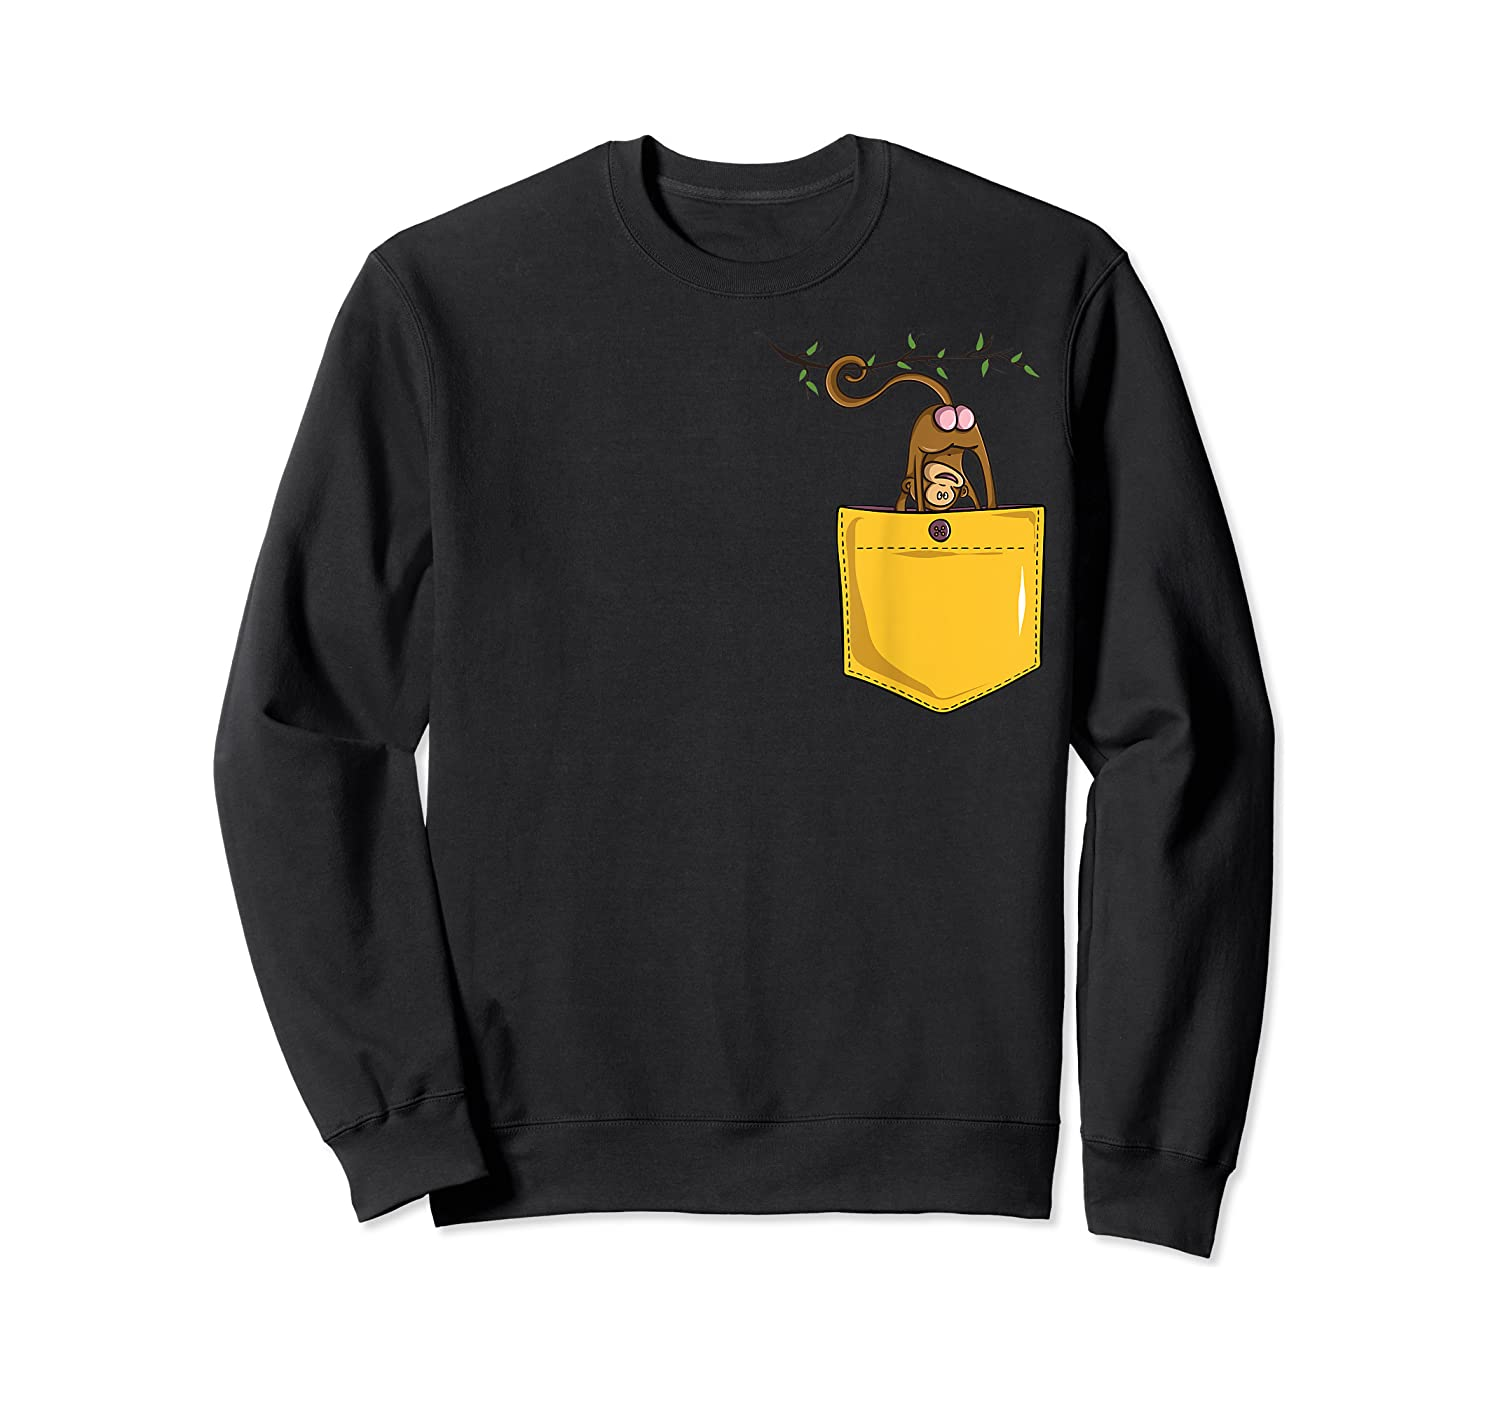 Zookeeper Gifts Funny Monkey Lover For , , Adults Shirts Crewneck Sweater